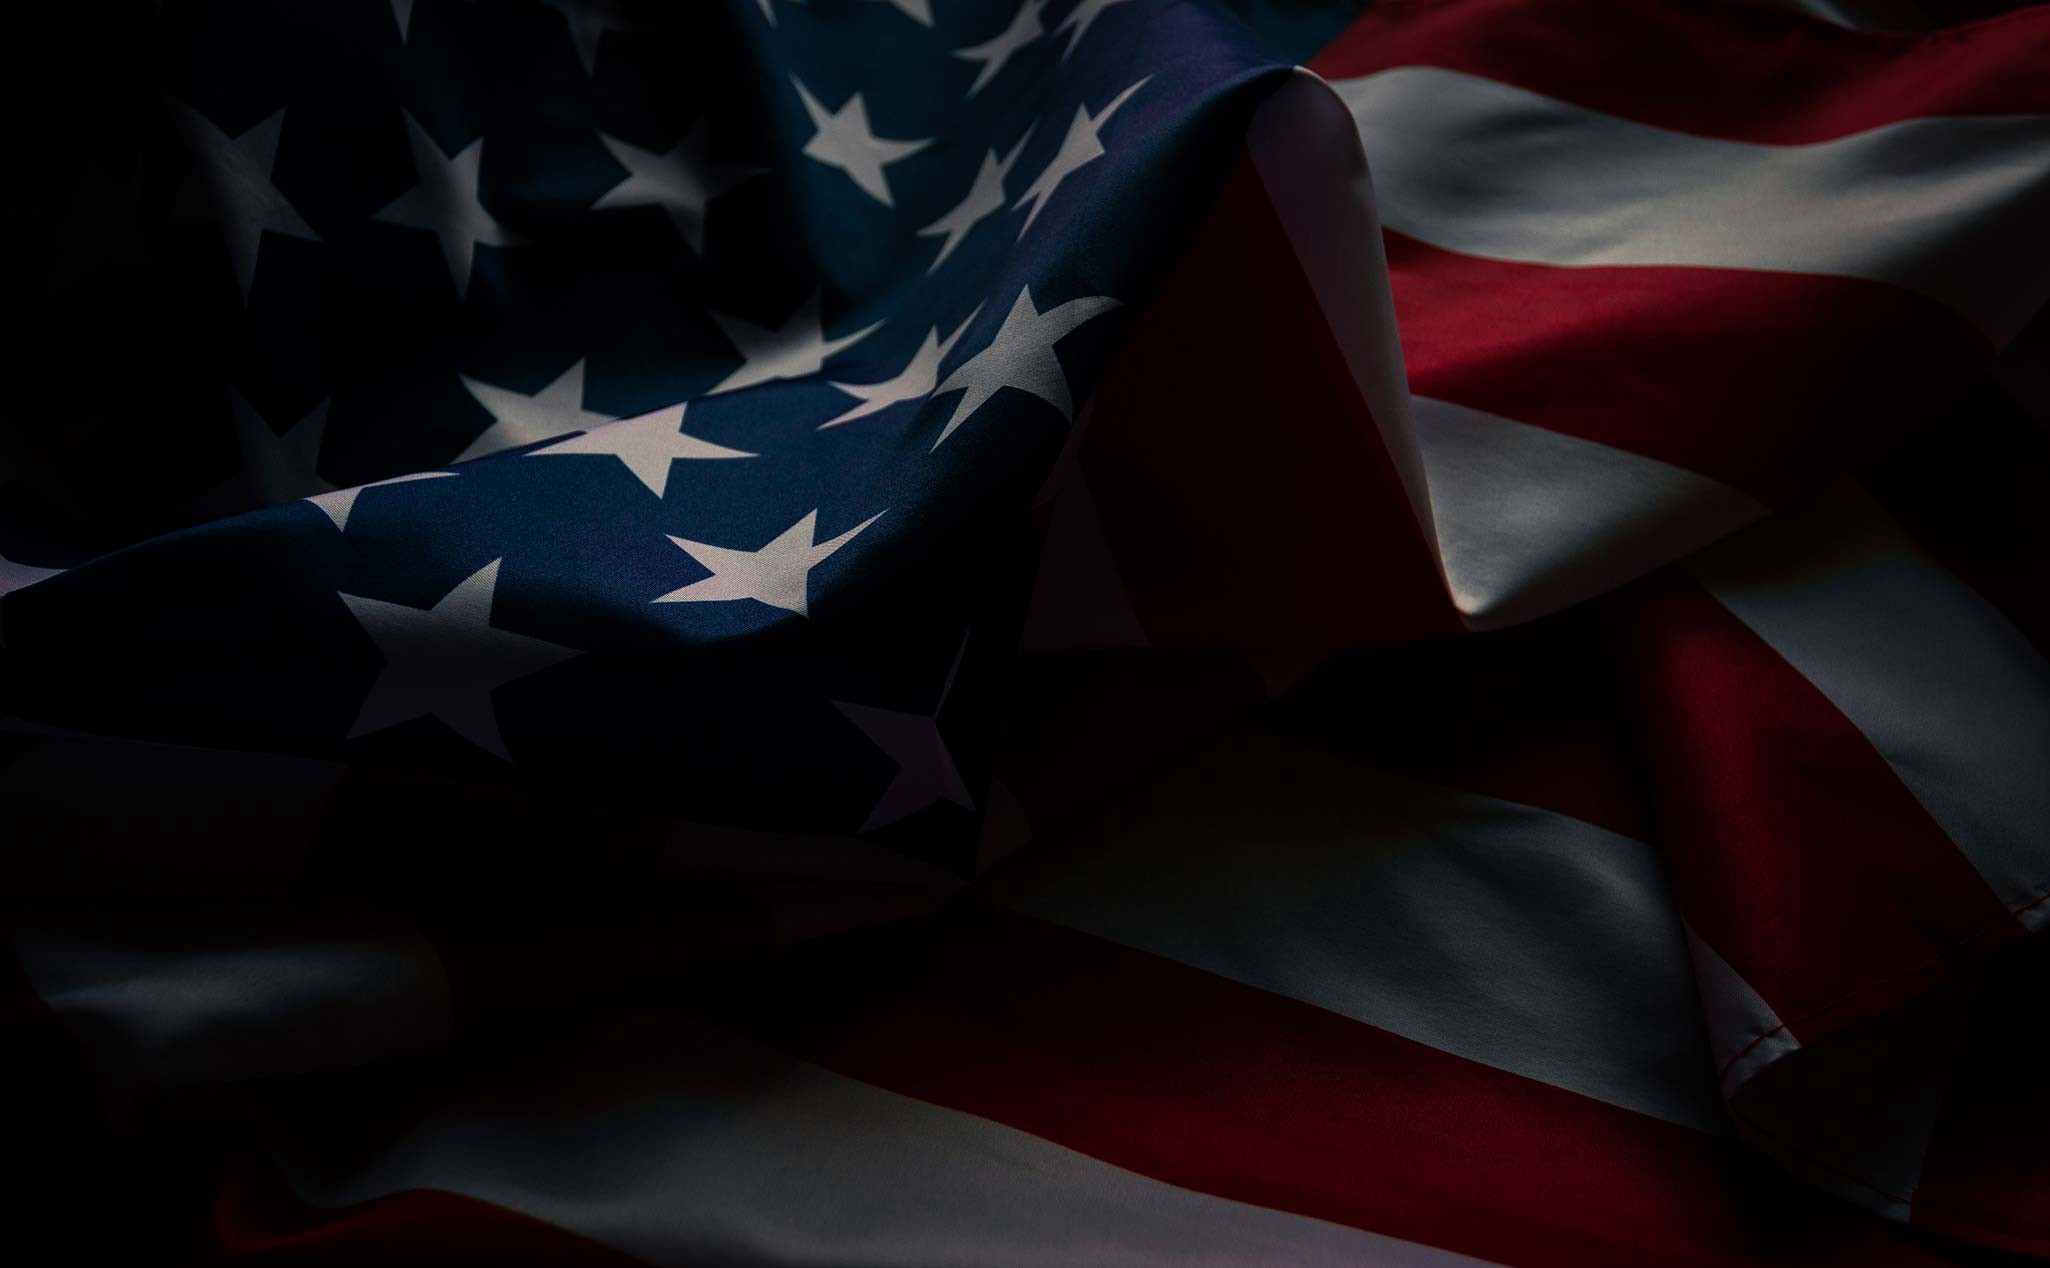 Close-up of the American flag with a dark filtered background.